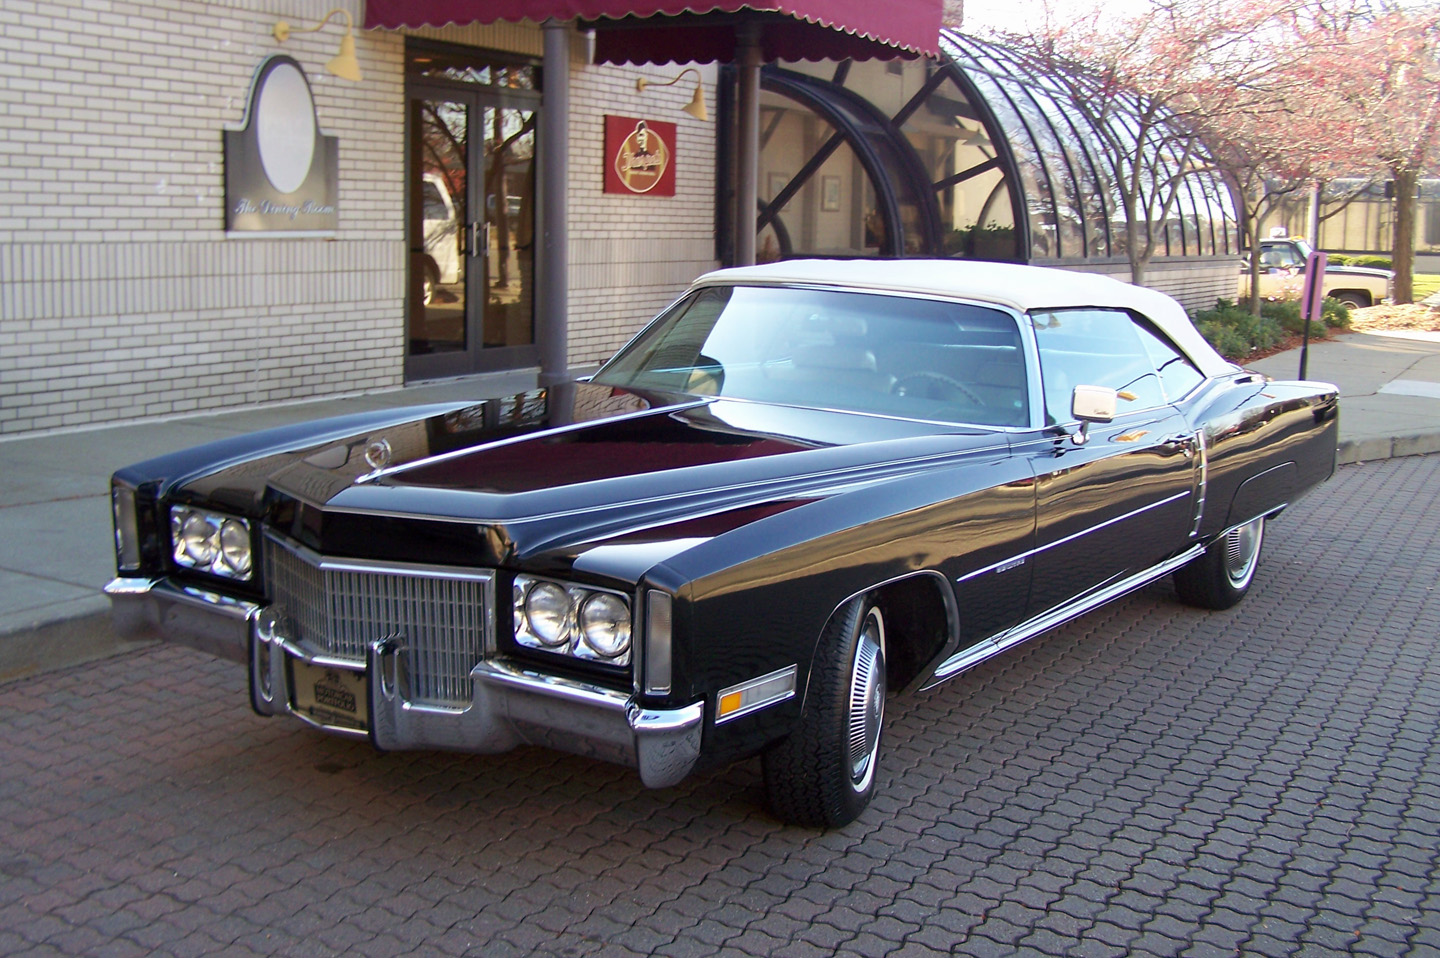 1971 Cadillac Eldorado Car Photos Catalog 2018